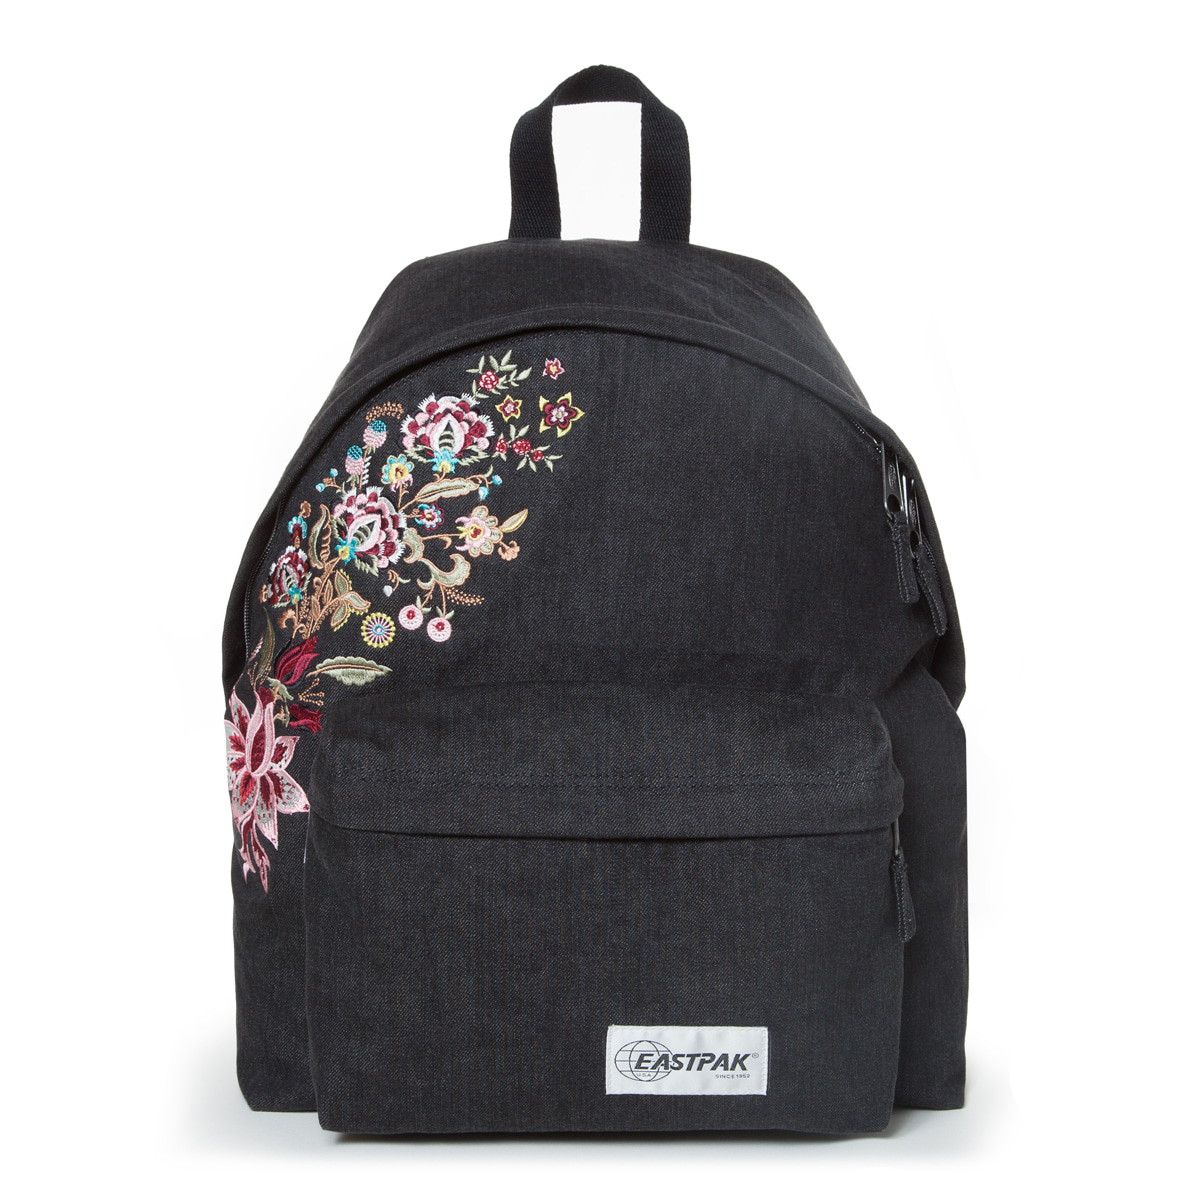 [EASTPAK] PRINCESS GRUNGE 백팩 패디드 파커 EICBA15 18U